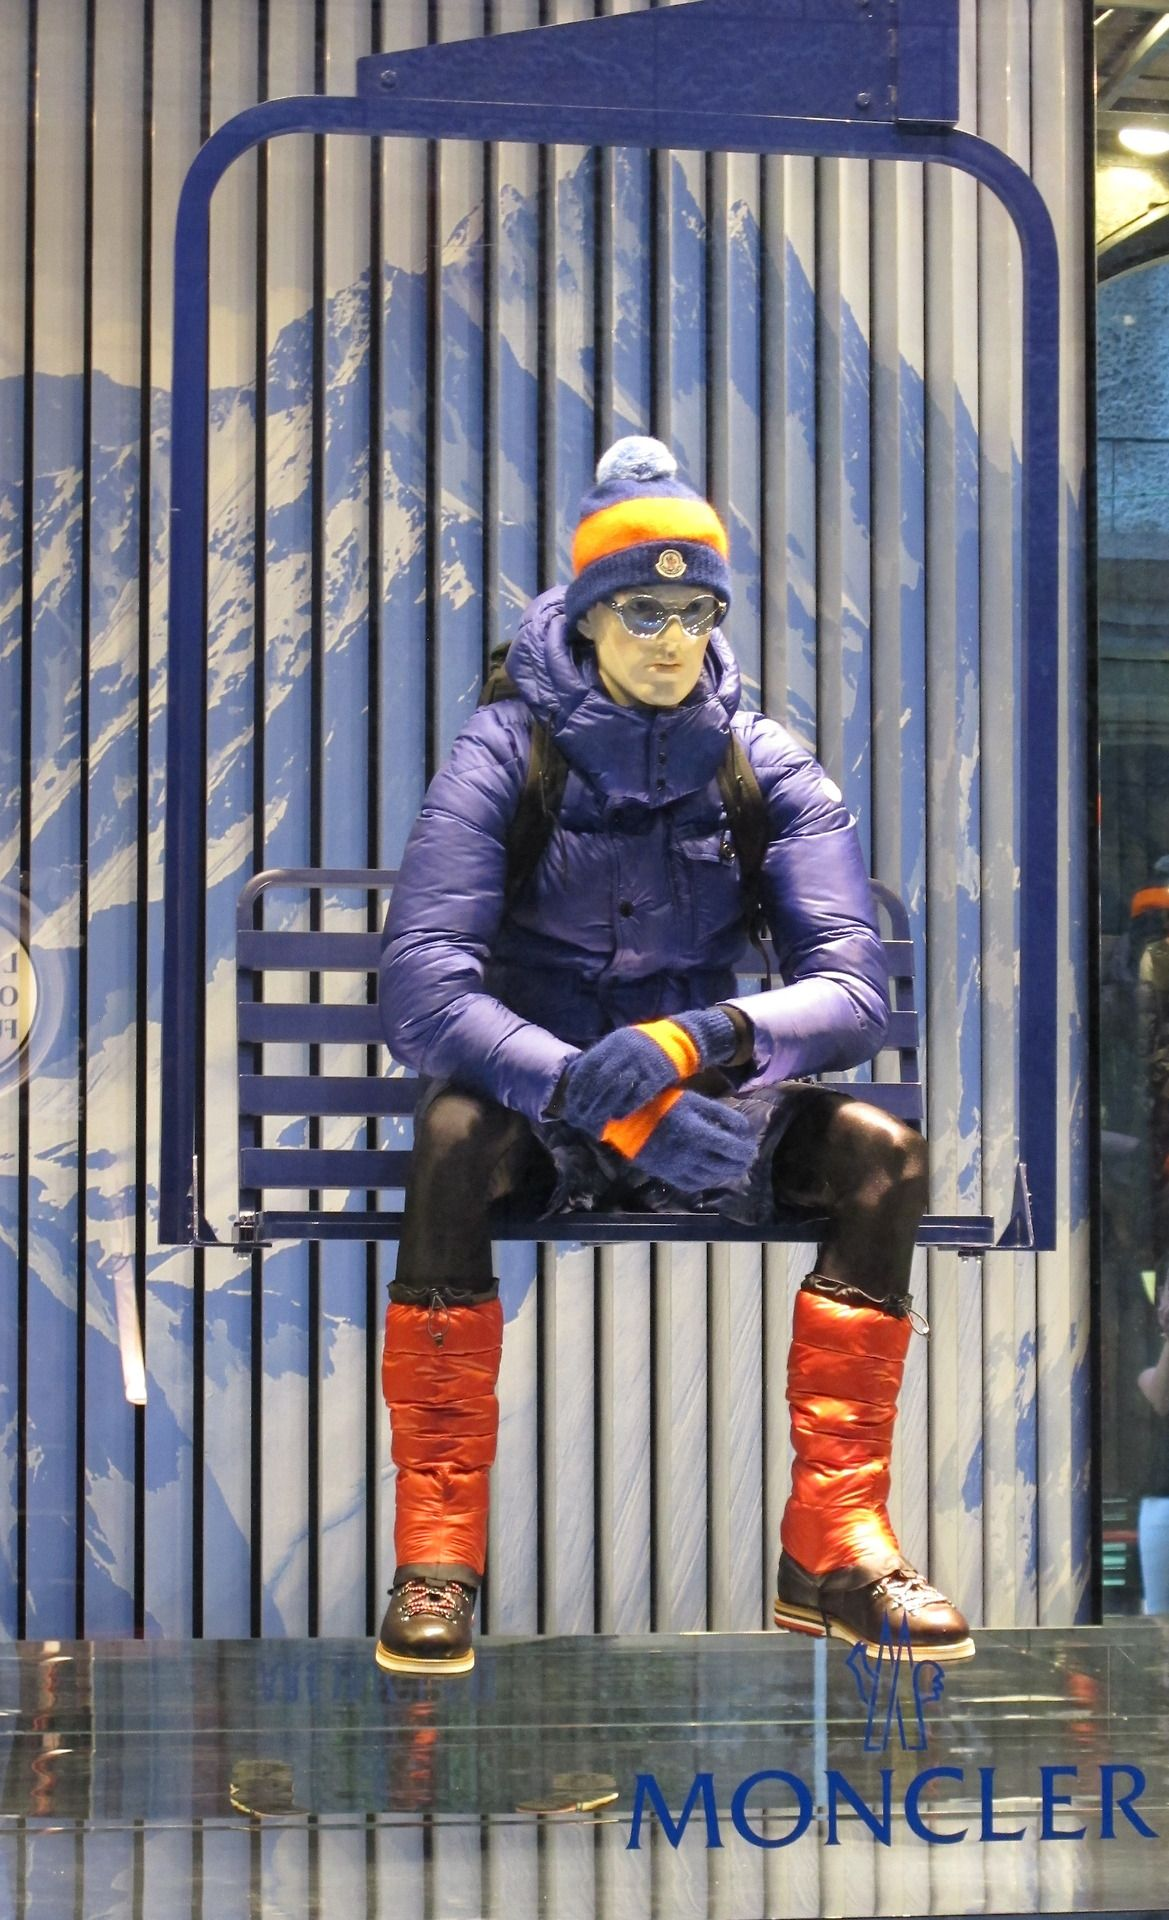 """MONCLER, Milan, Italy - Via Della Spiga, """" Let's go skiing......................just waiting for the snow, it's coming, be patient"""", pinned by Ton van der Veer"""